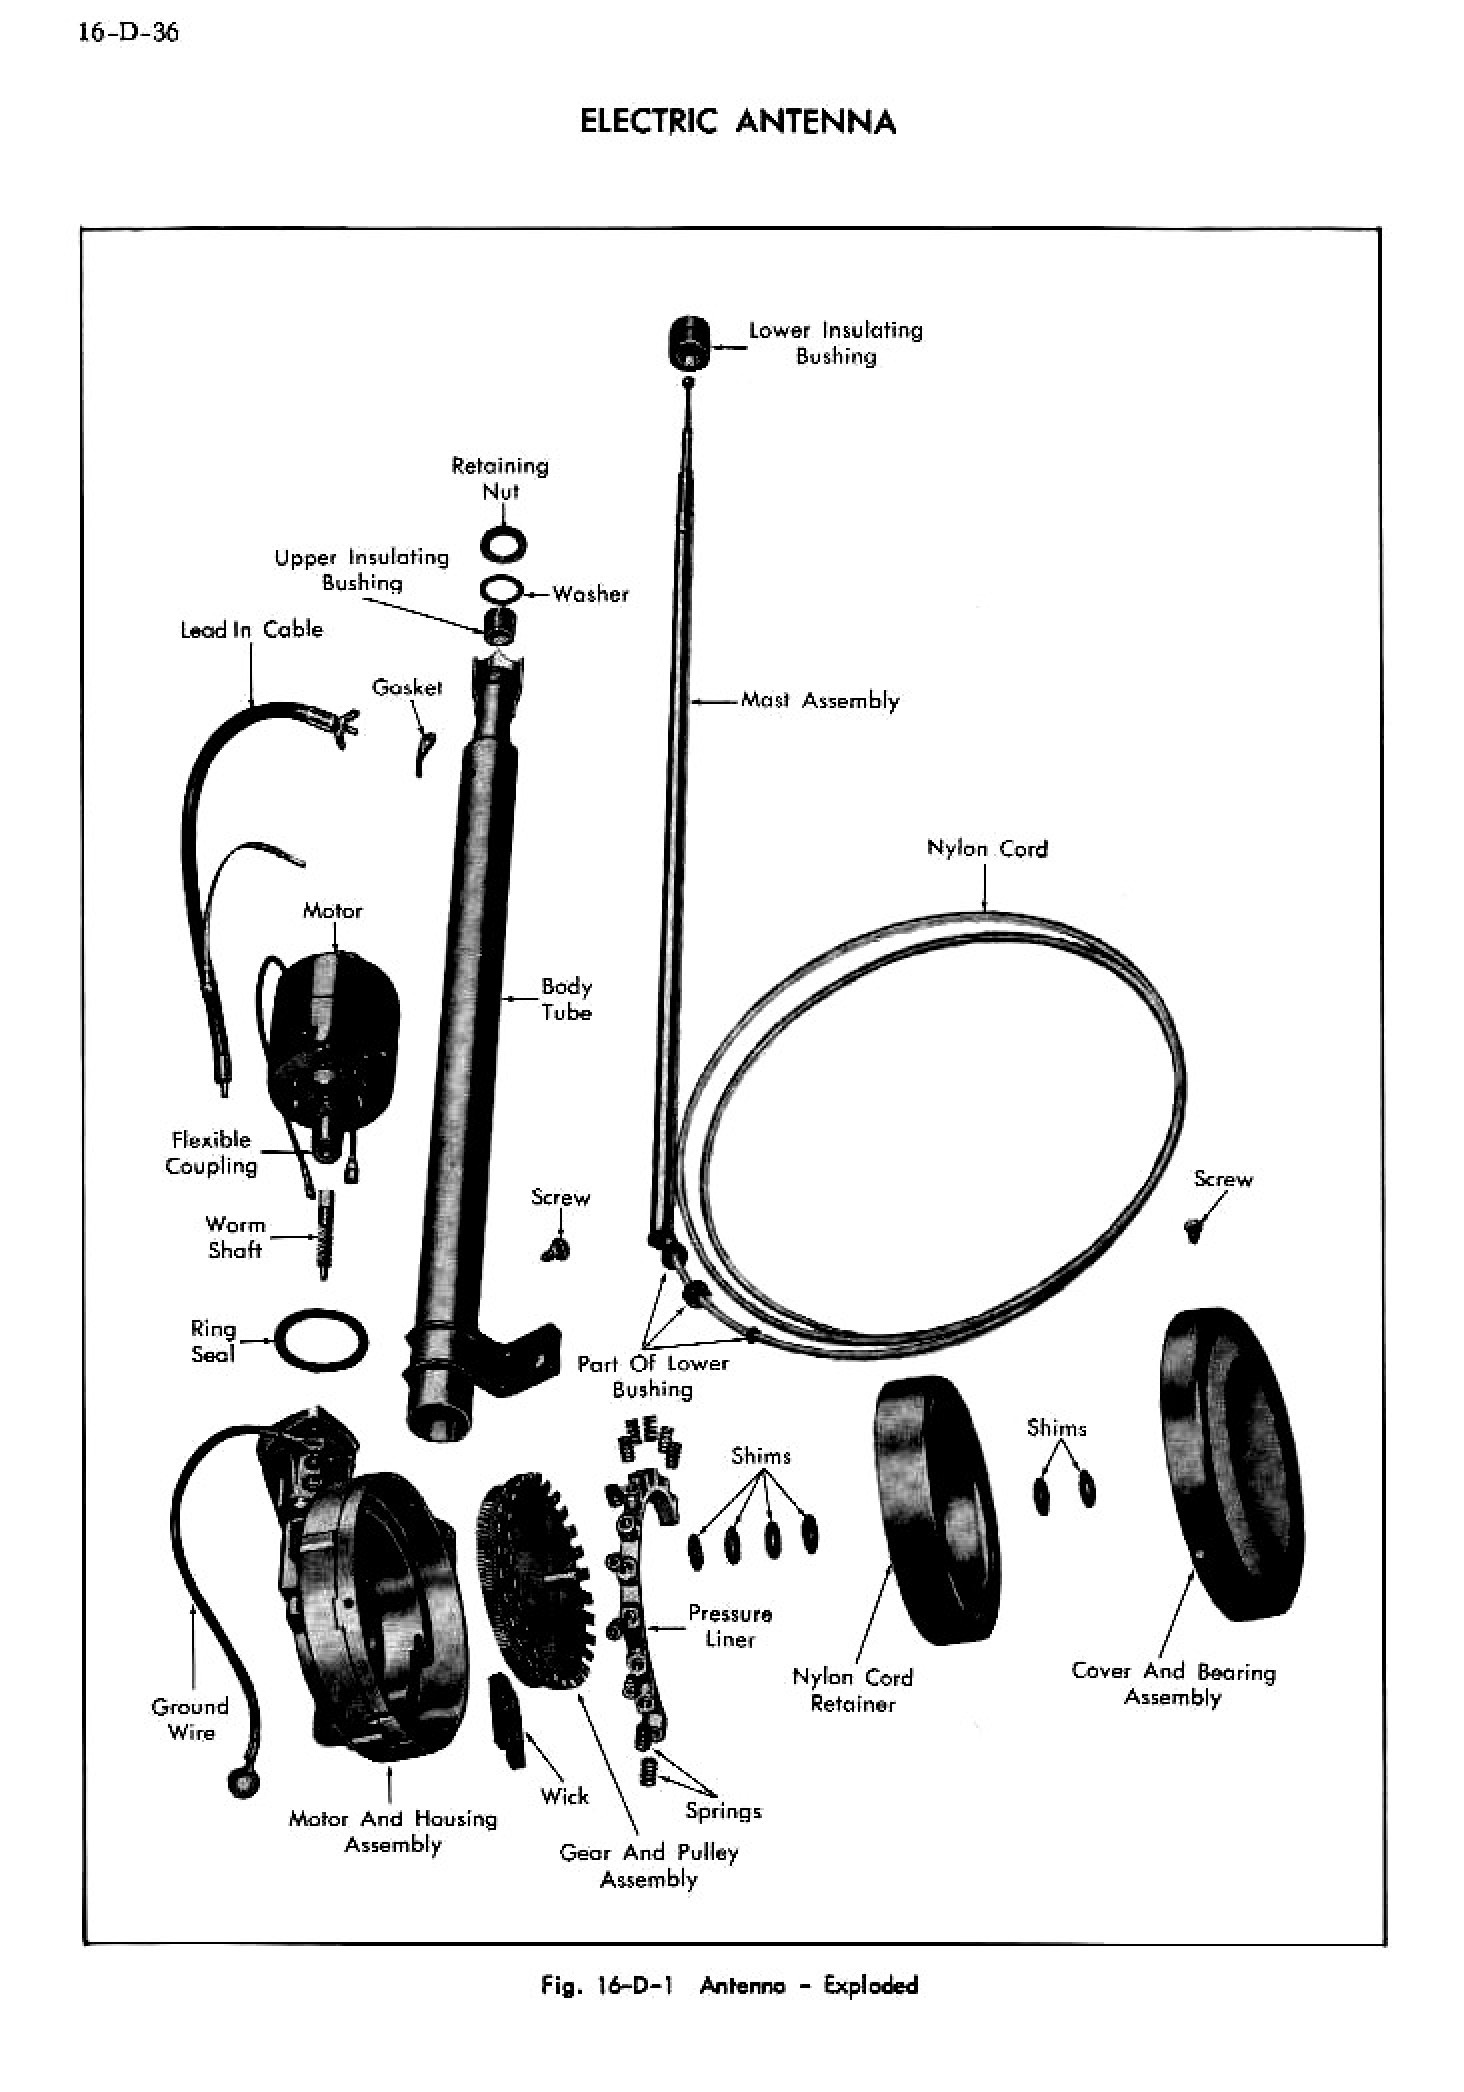 1956 Cadillac Shop Manual- Accessories Page 36 of 45